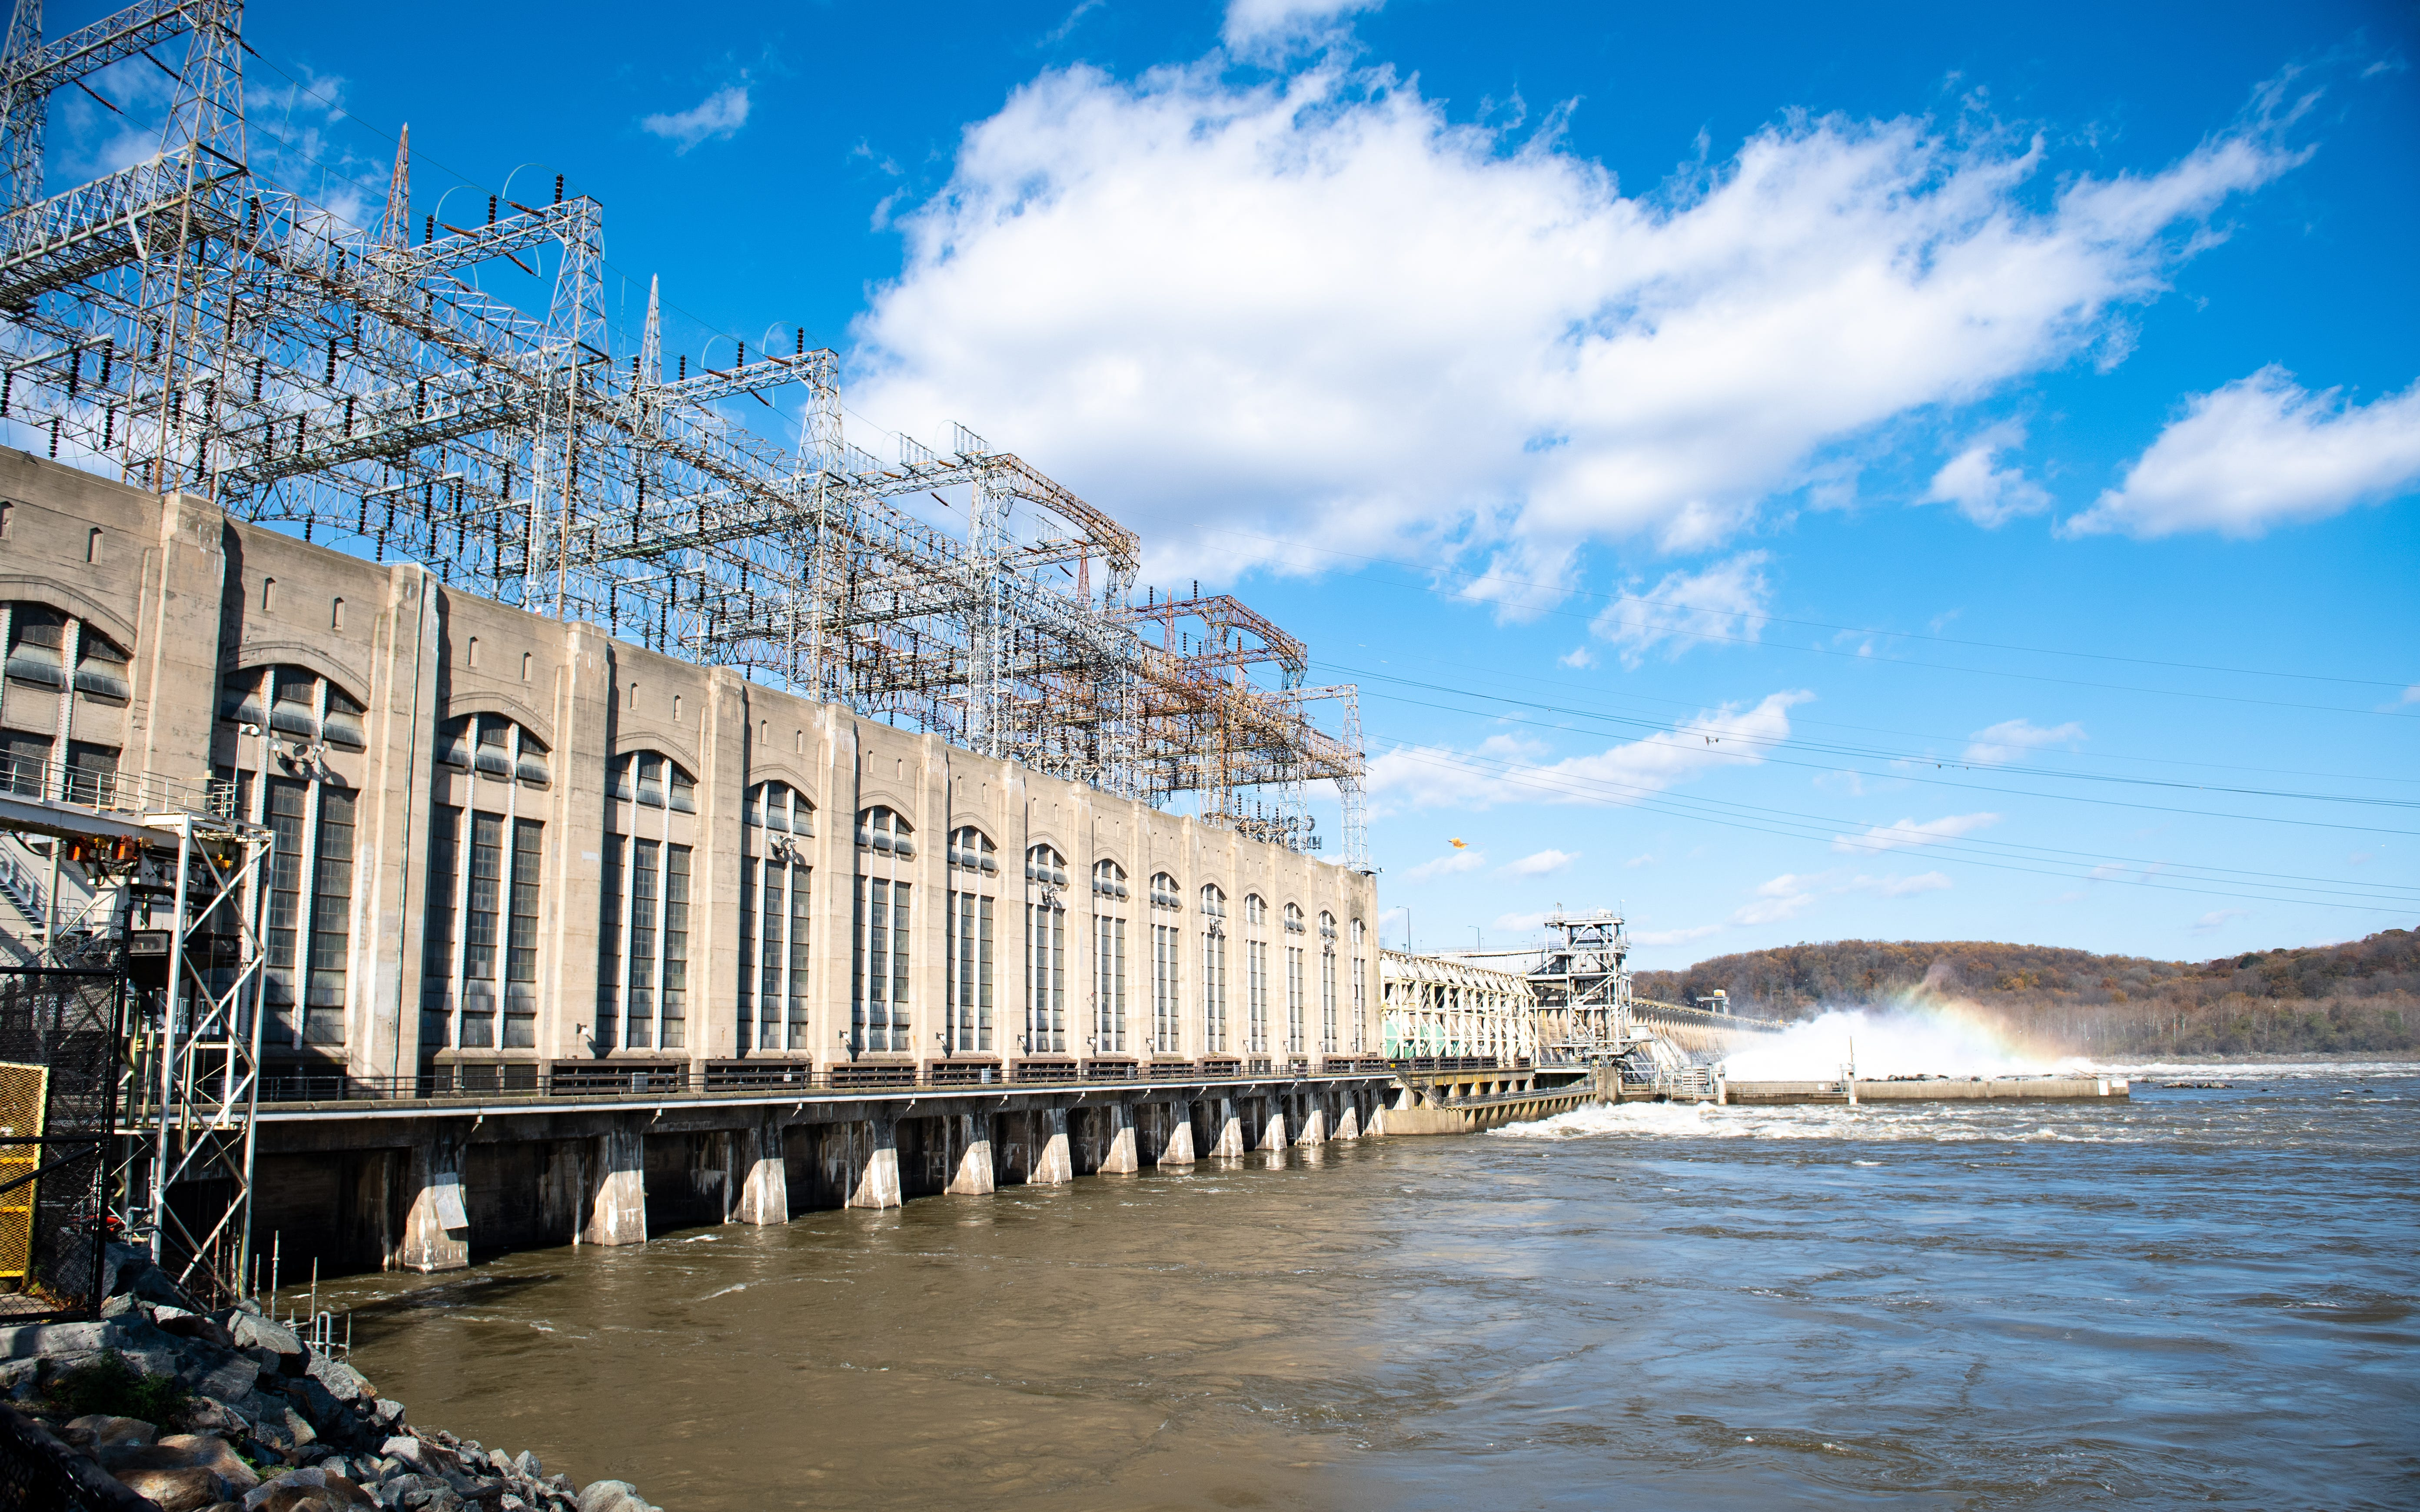 The 6th Annual Eagle Day event is held at the Conowingo Dam in Darlington, Maryland. This is one of the top sites in the country to see bald eagles, November 10, 2018.